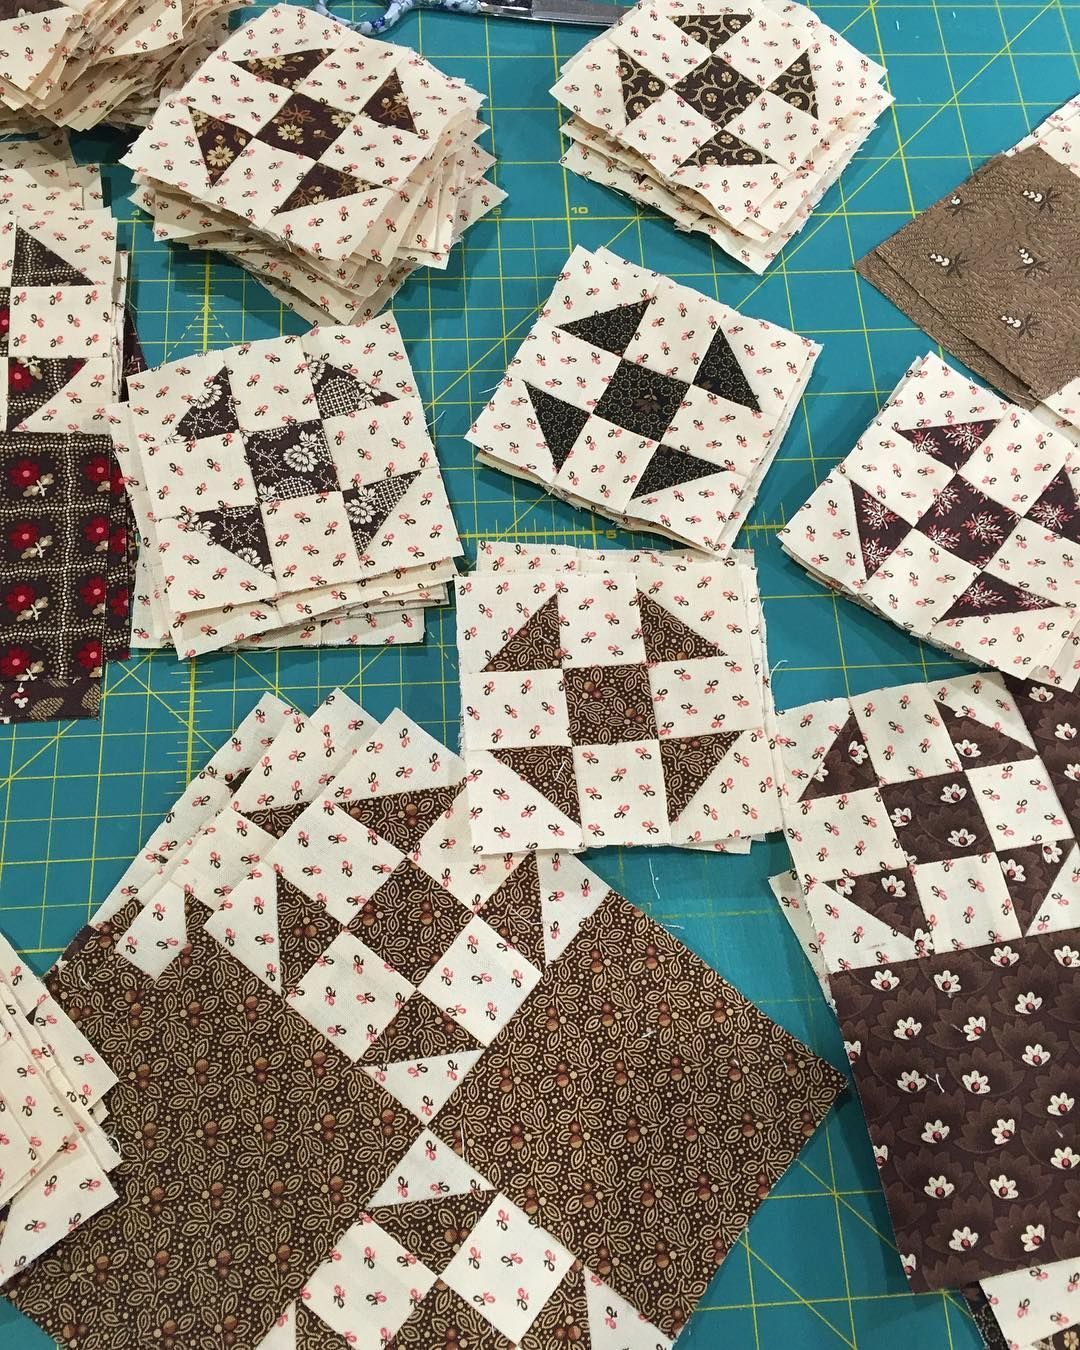 Brown And Cream Shoofly Quilt Blocks By Karens Stitchesnquilts Quilts Churn Dash Quilt Mini Quilts